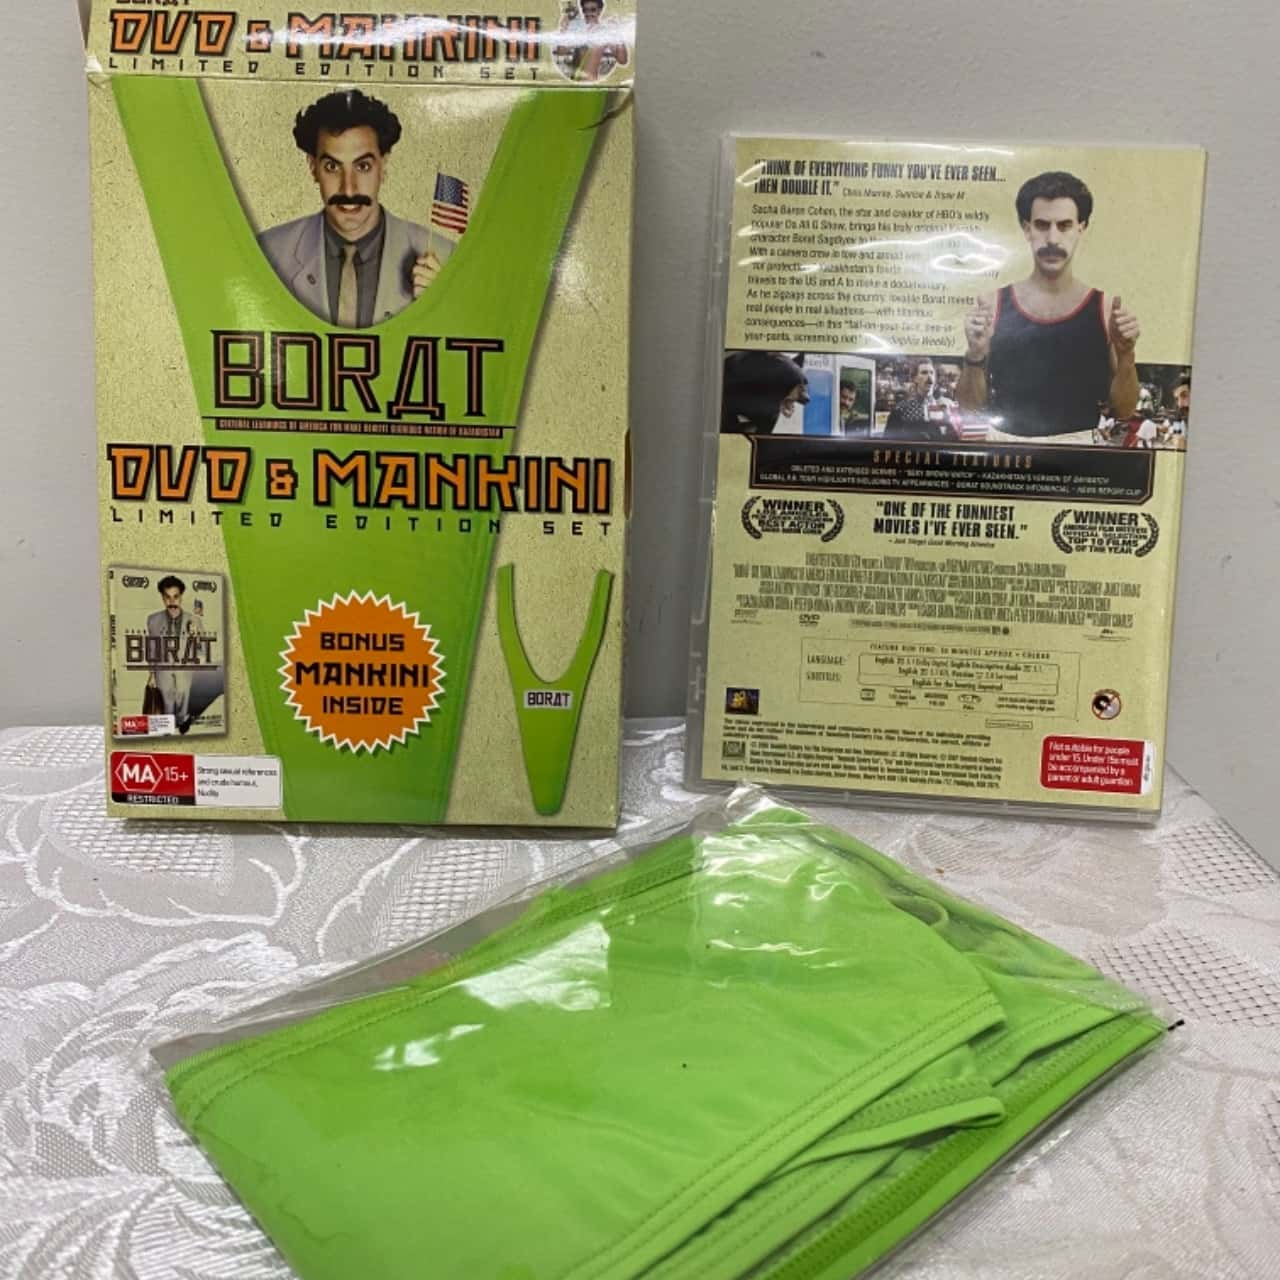 Borat DVD and Mankini Limited Edition Set New